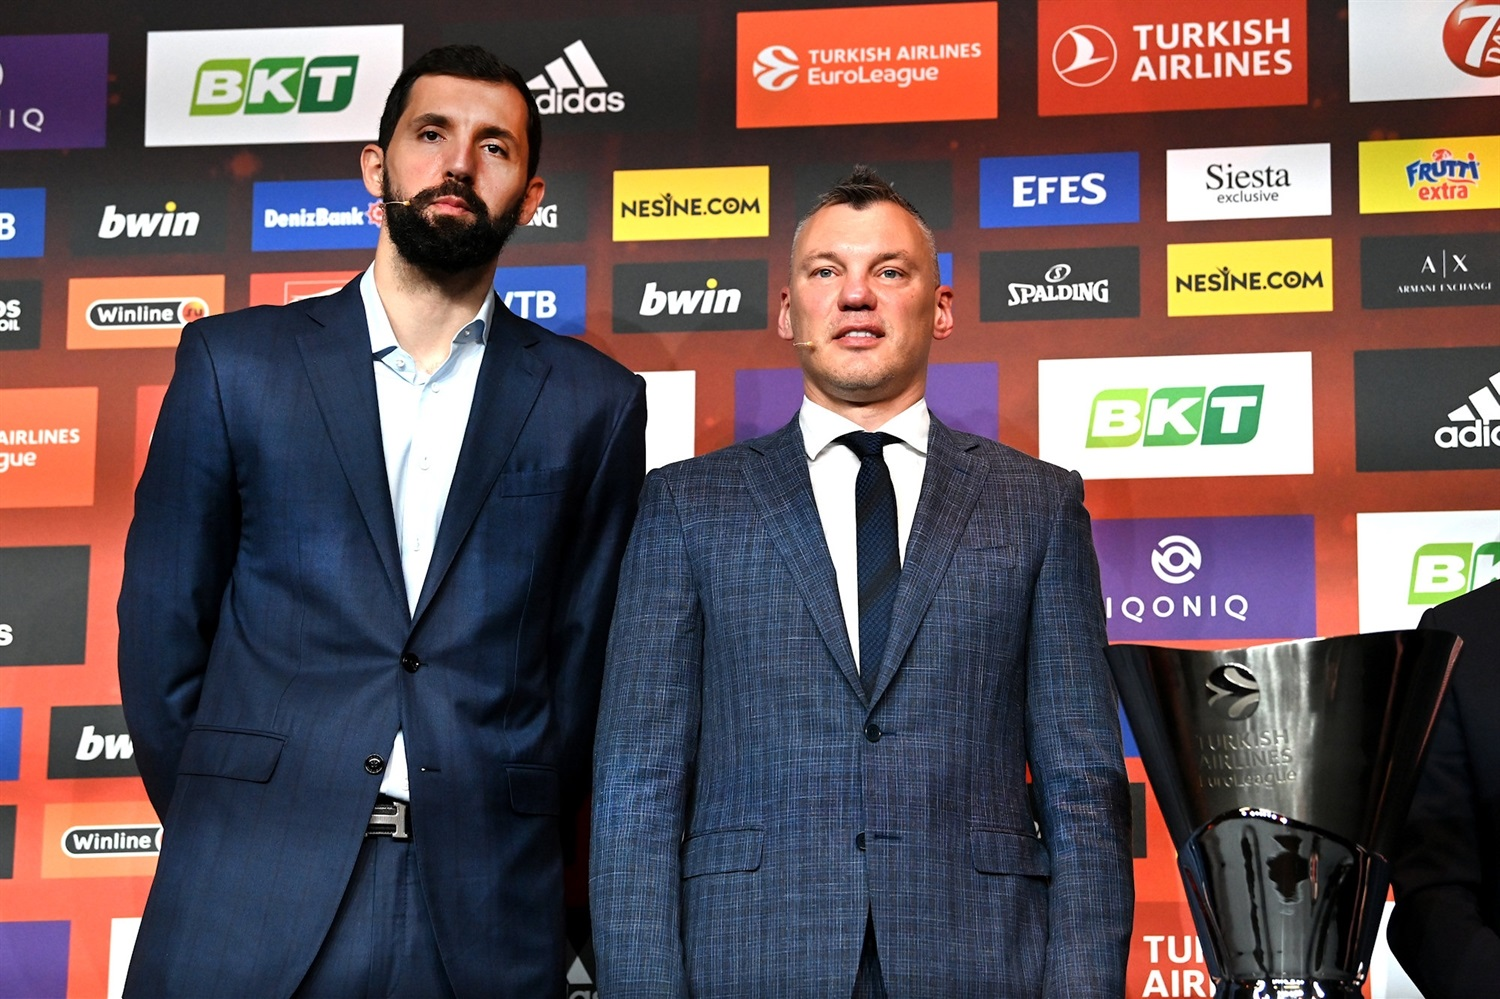 Nikola Mirotic and Sarunas Jasikevicius - FC Barcelona - Opening Press Conference - Final Four Cologne 2021 - EB20